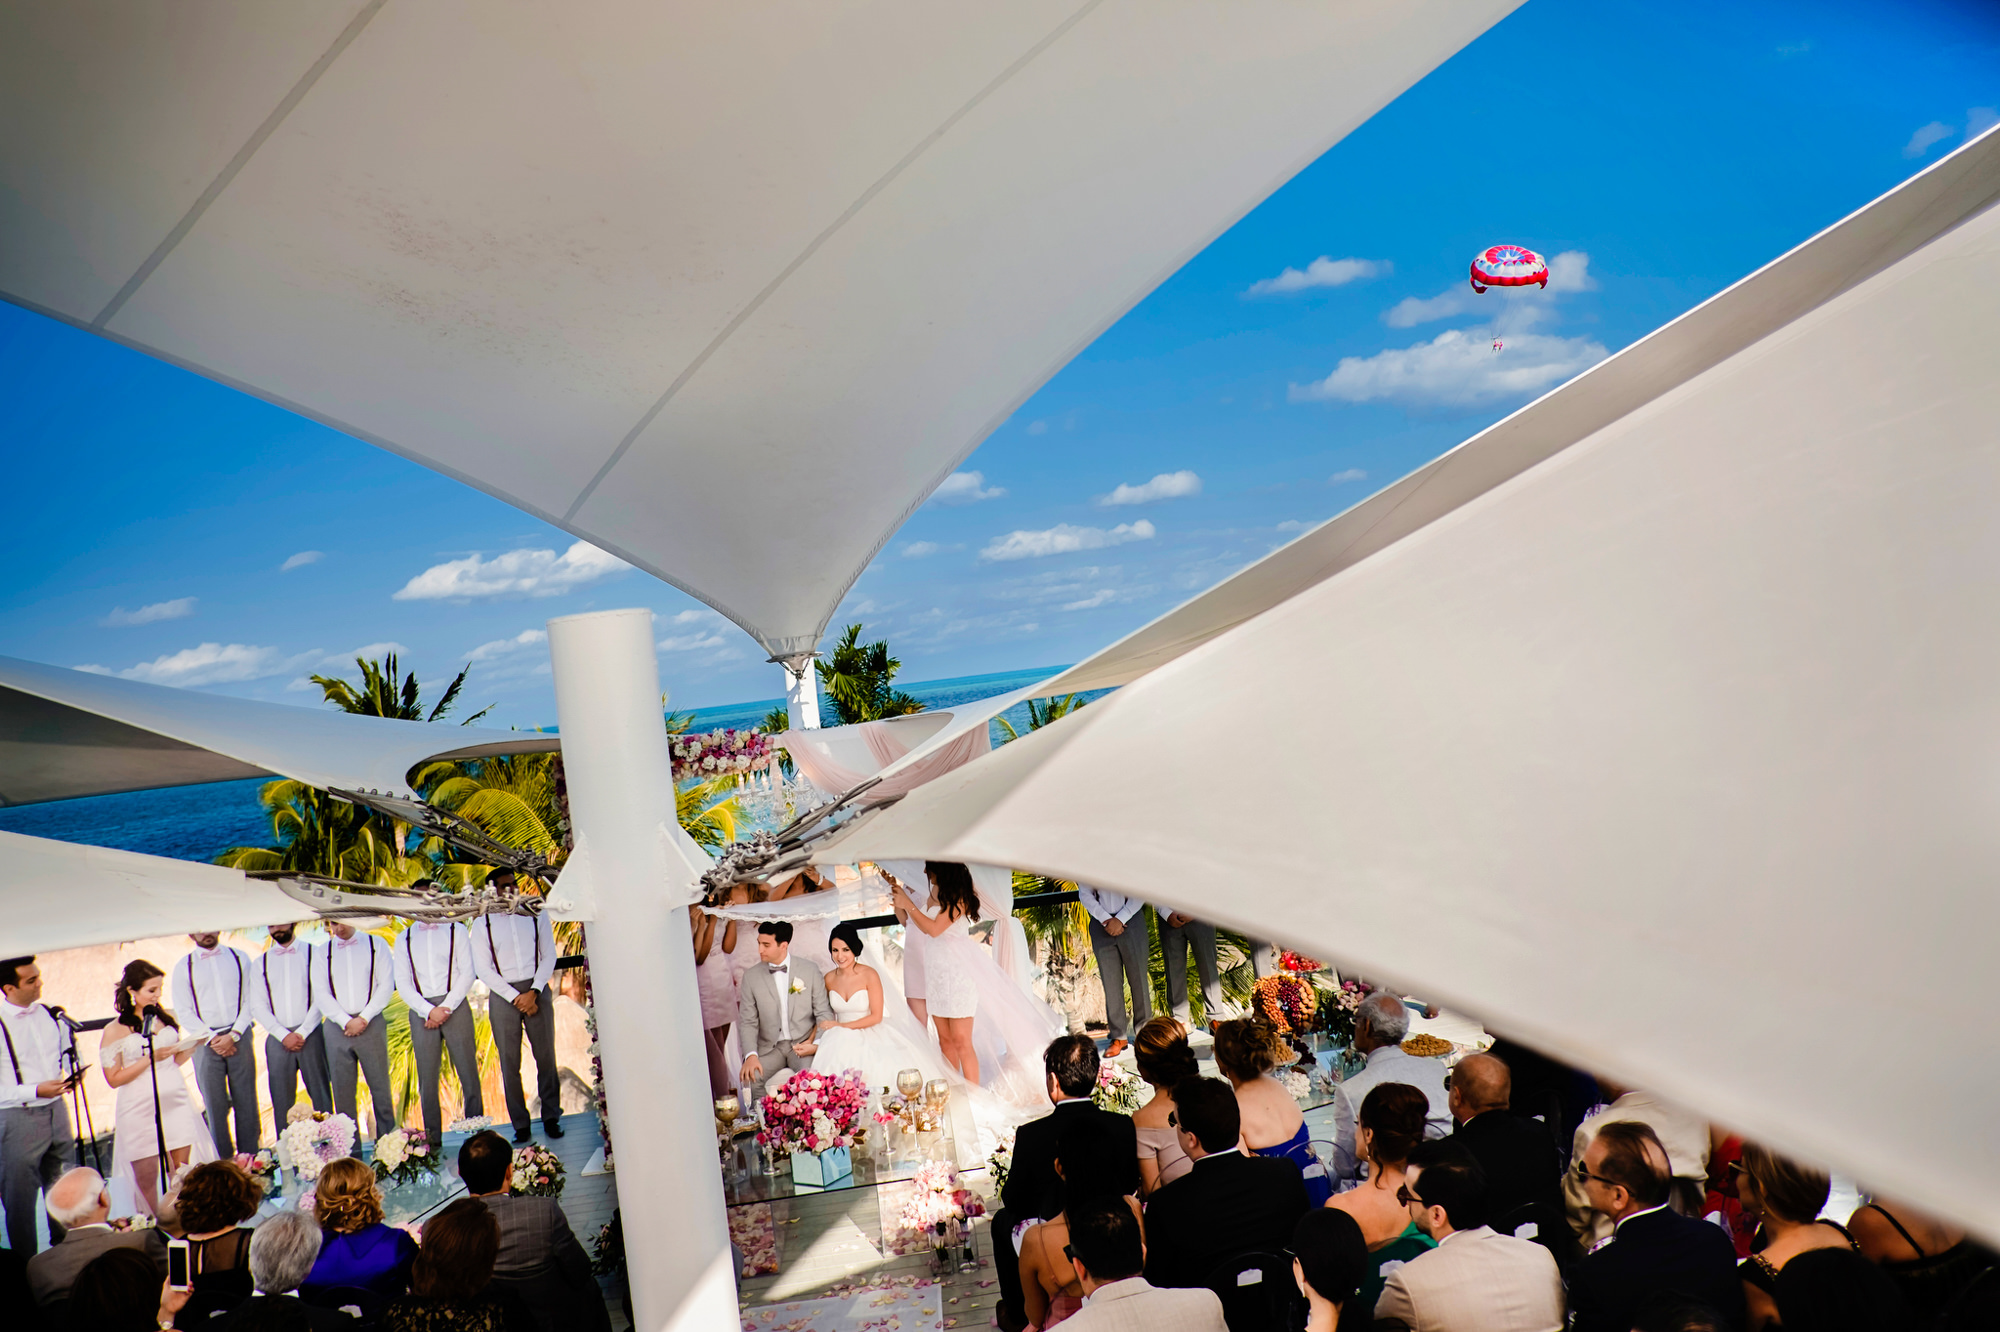 Unique composition of wedding ceremony beneath tents with parachute in background by Chrisman Studios